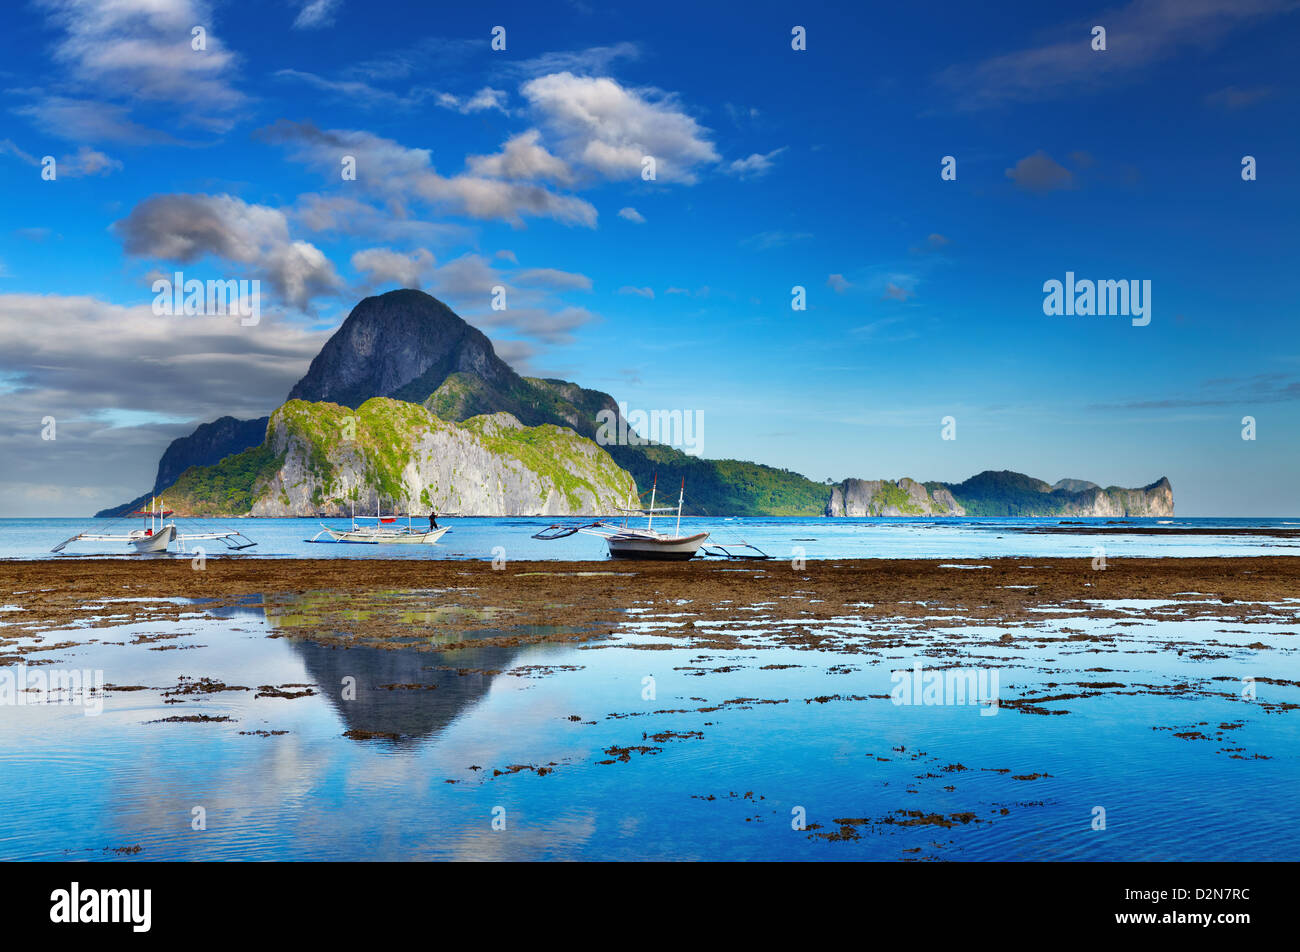 El Nido bay and Cadlao island at low tide, Palawan, Philippines - Stock Image